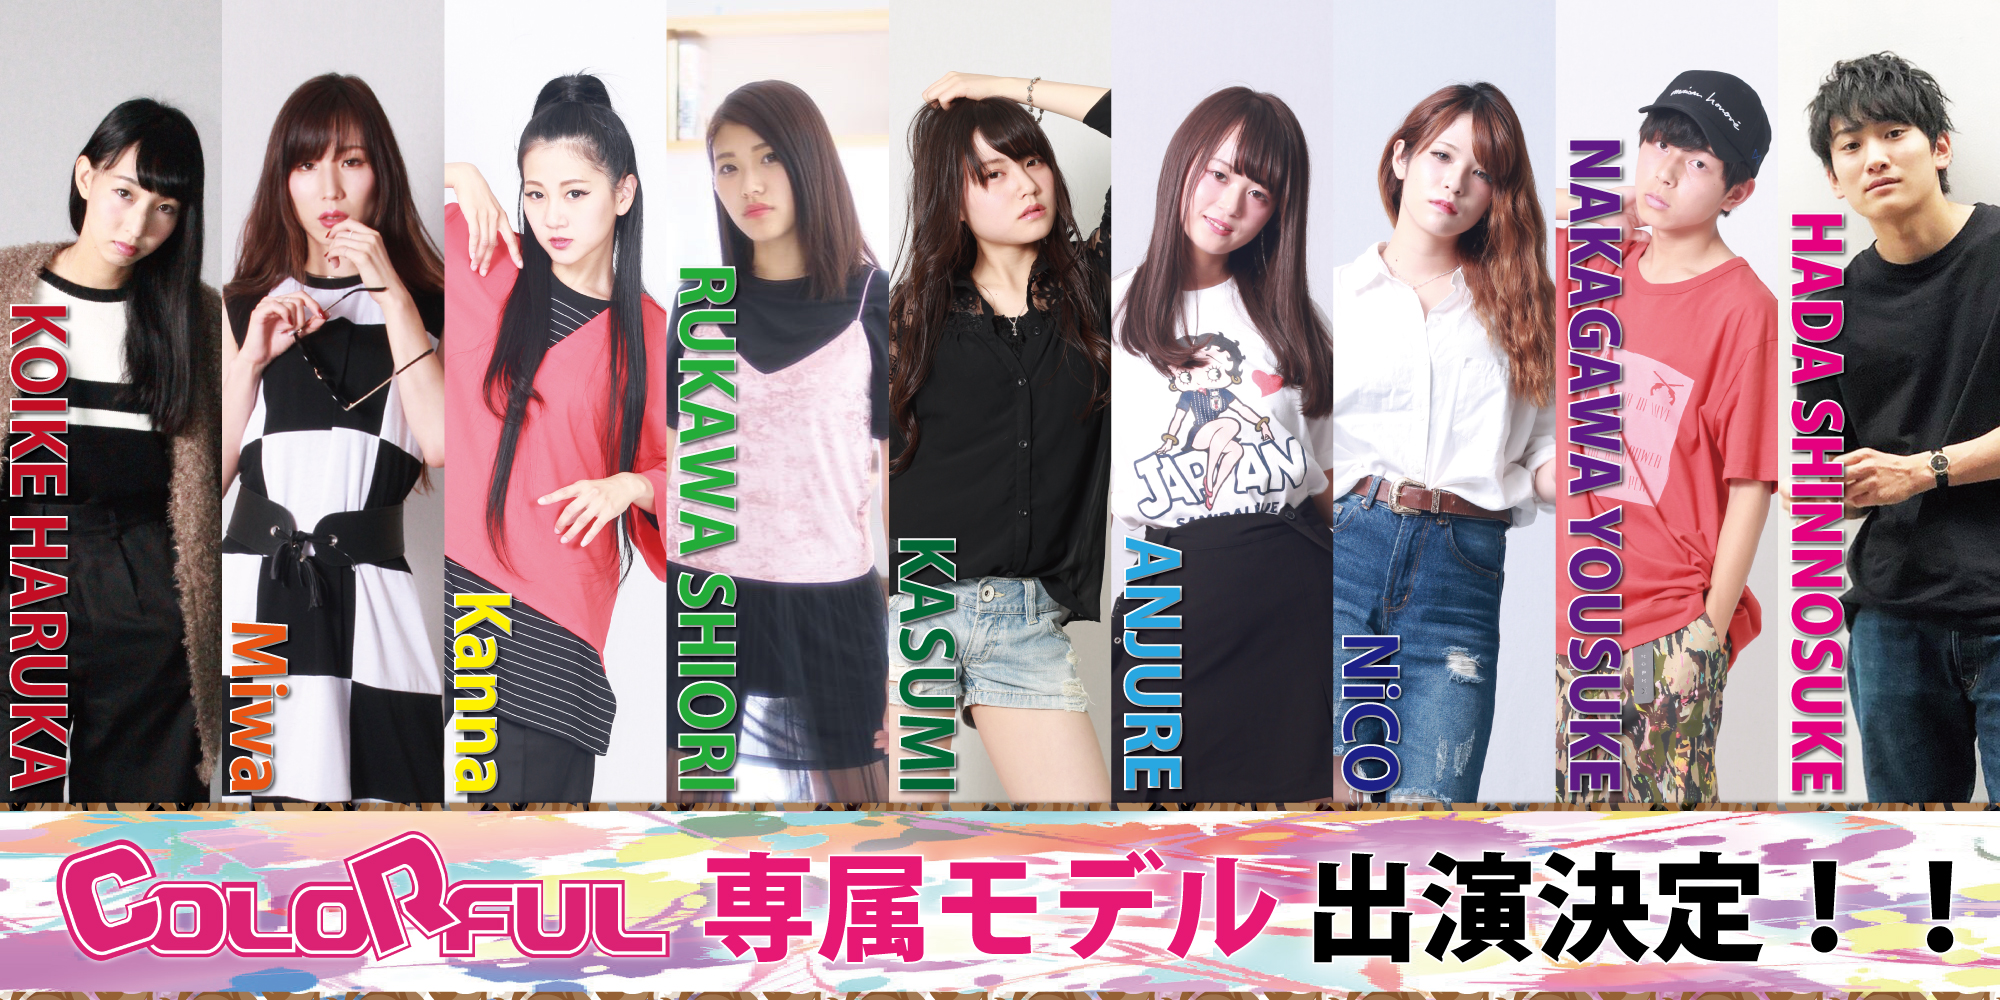 COLORFUL COLLECTION Light Vol.6